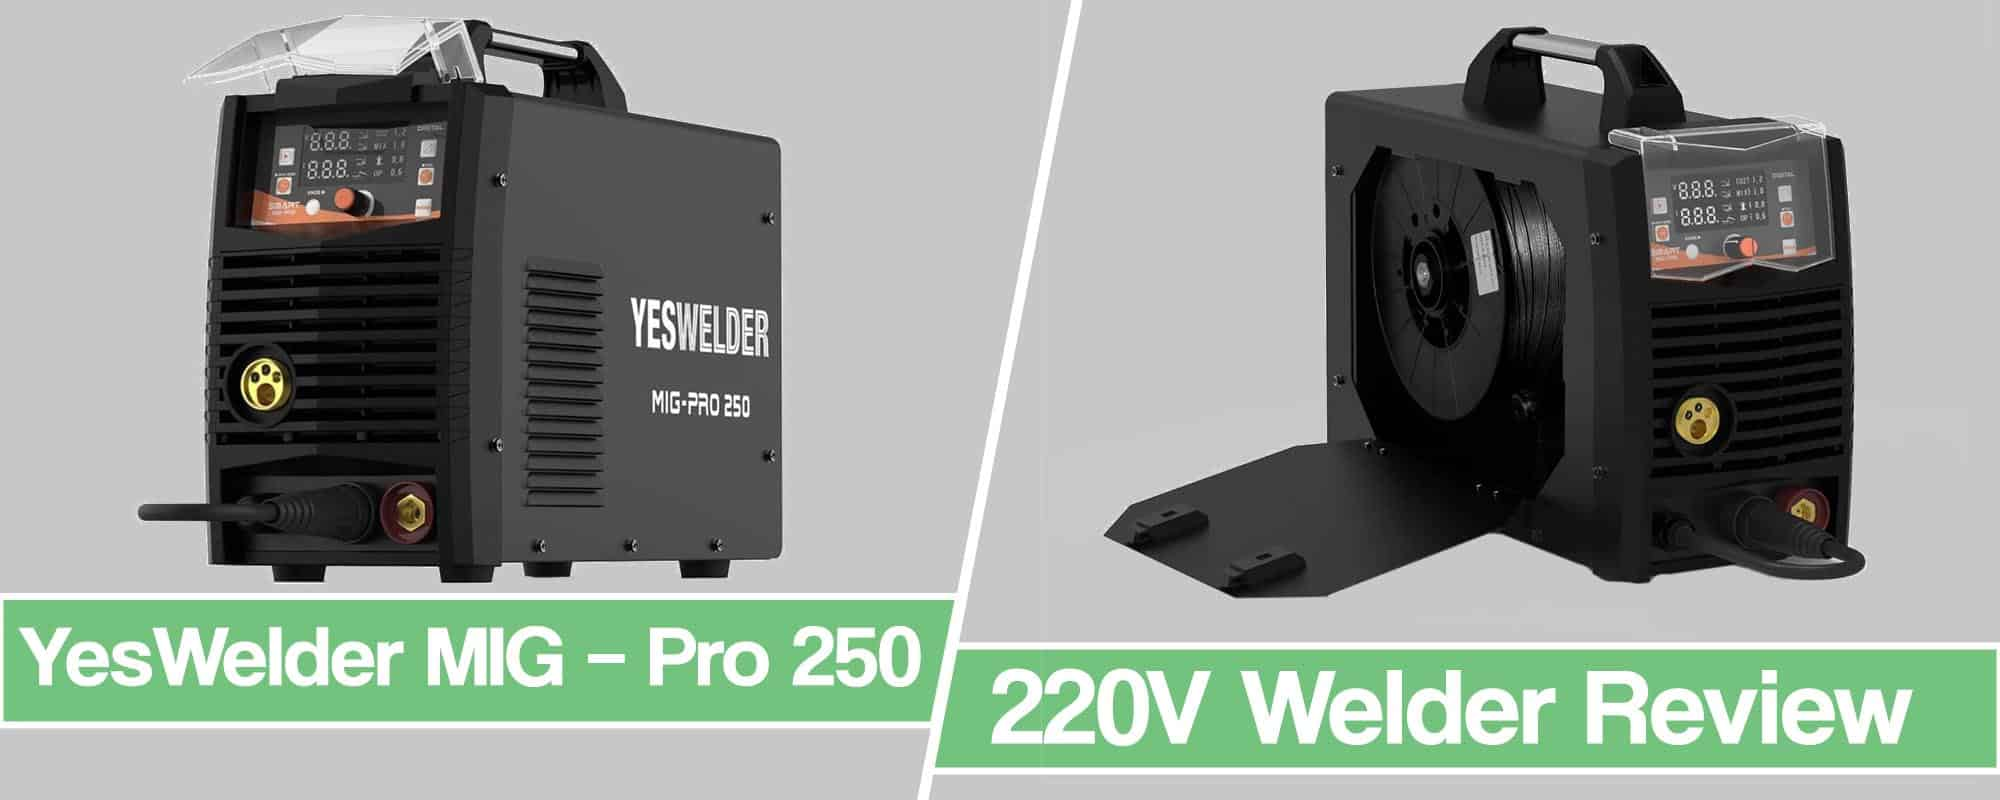 Feature image for YesWelder MIG – Pro 250 Review article